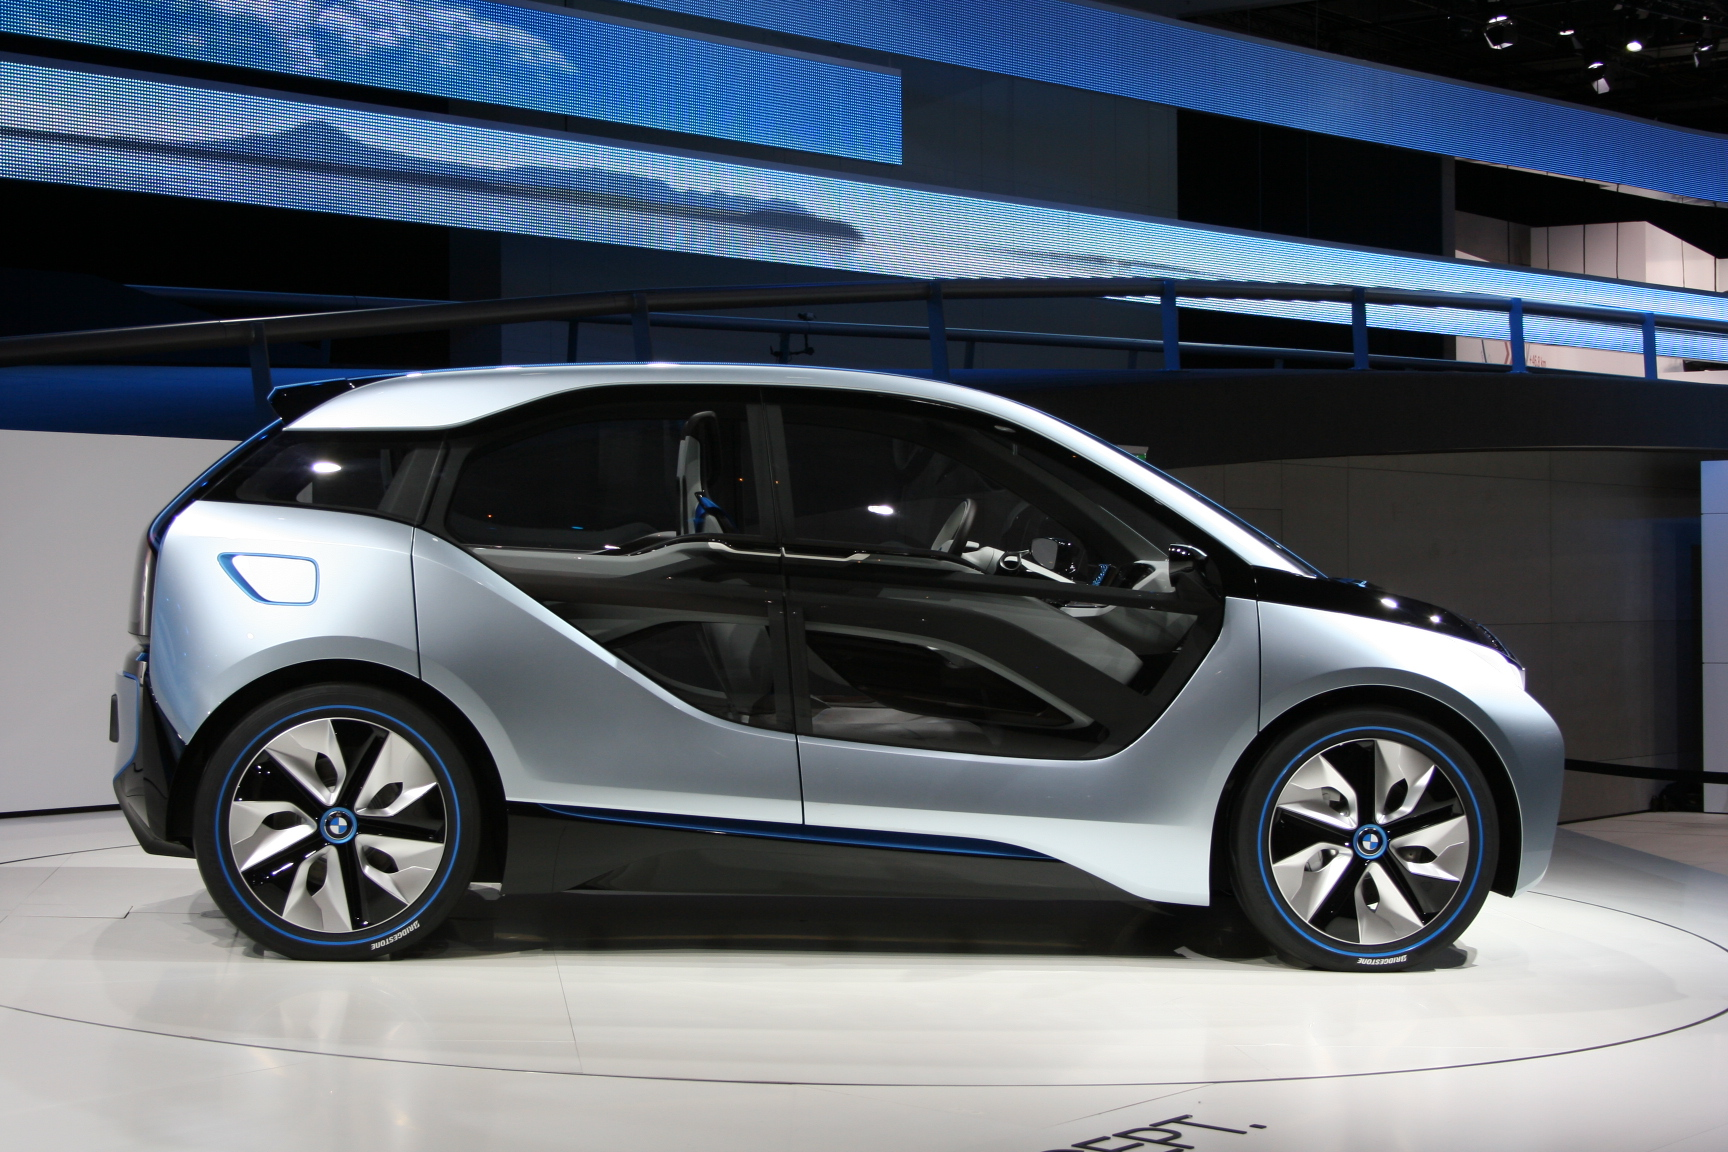 Bmw I3 Vs Nissan Leaf Vs Hyundai Ioniq Electric likewise File BMW i3 Concept IAA side in addition 1077964 sauber F1 Cutaway Image All The Fastidious Details furthermore Review in addition Bmw i3. on tesla model 3 size dimensions